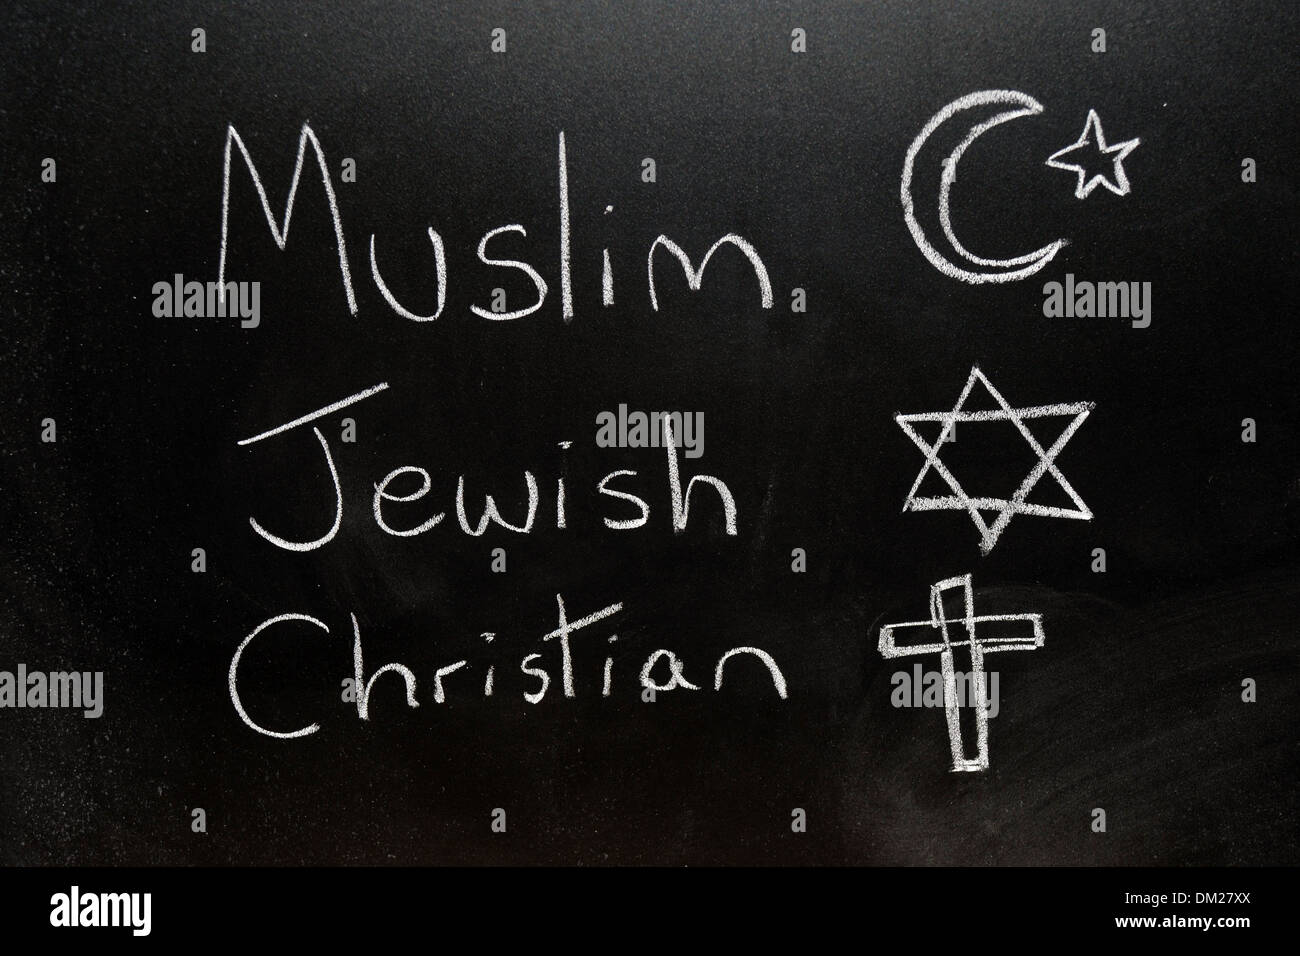 Close up of a blackboard with Muslim, Jewish and Christian written on it in chalk. - Stock Image